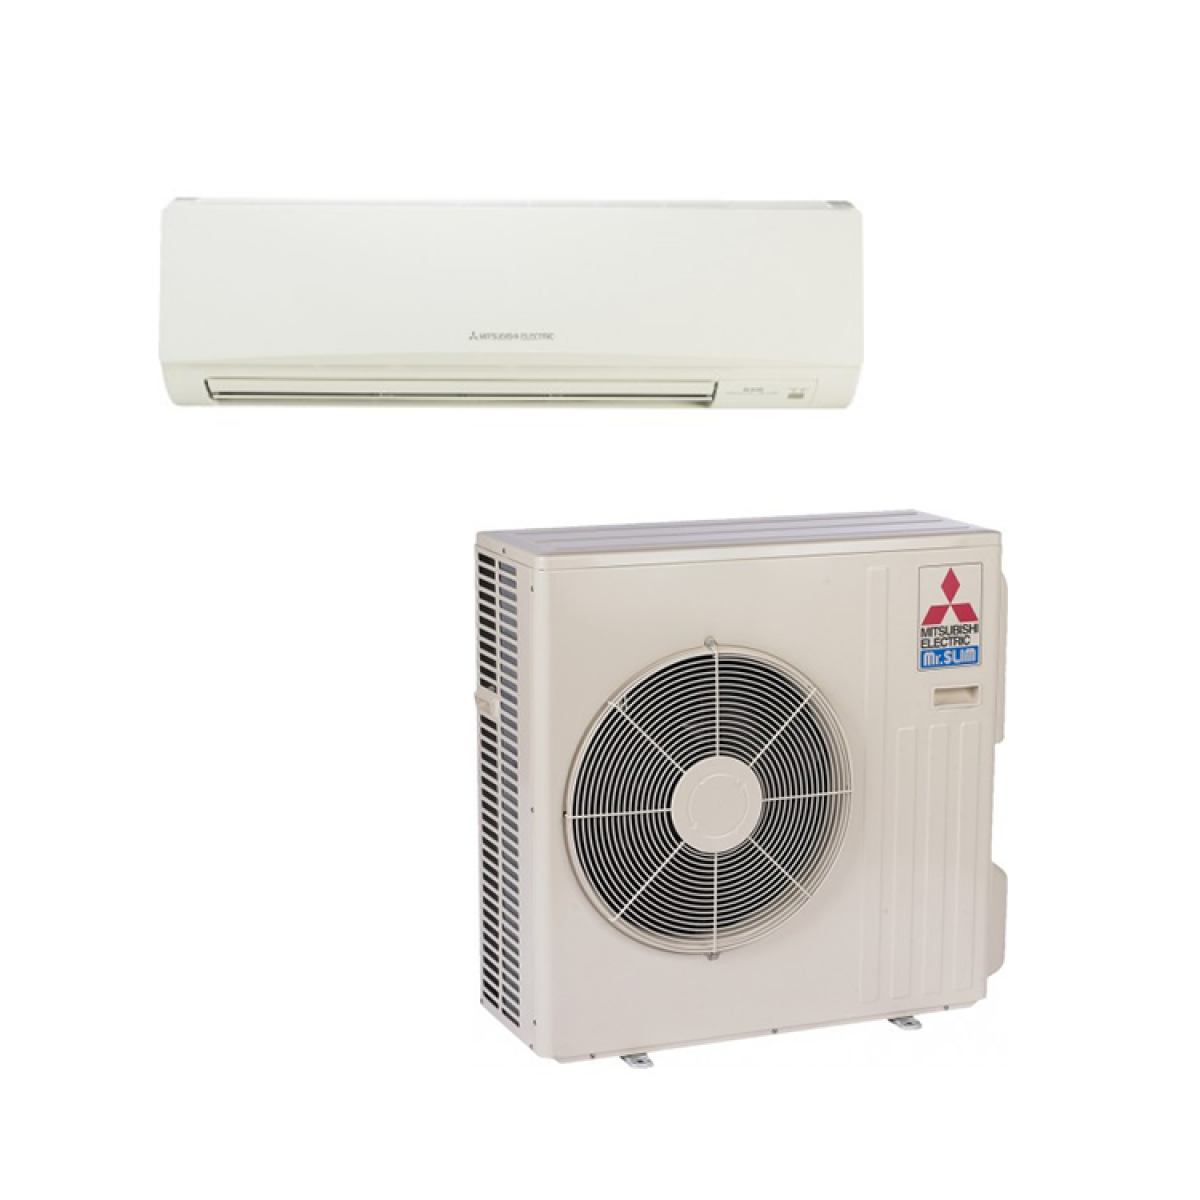 #9C2F41 Mitsubishi Mr. Slim 30 000 BTU Heat Pump Ductless Mini  Recommended 5437 Mitsubishi Mini Split Ductless pics with 1200x1200 px on helpvideos.info - Air Conditioners, Air Coolers and more